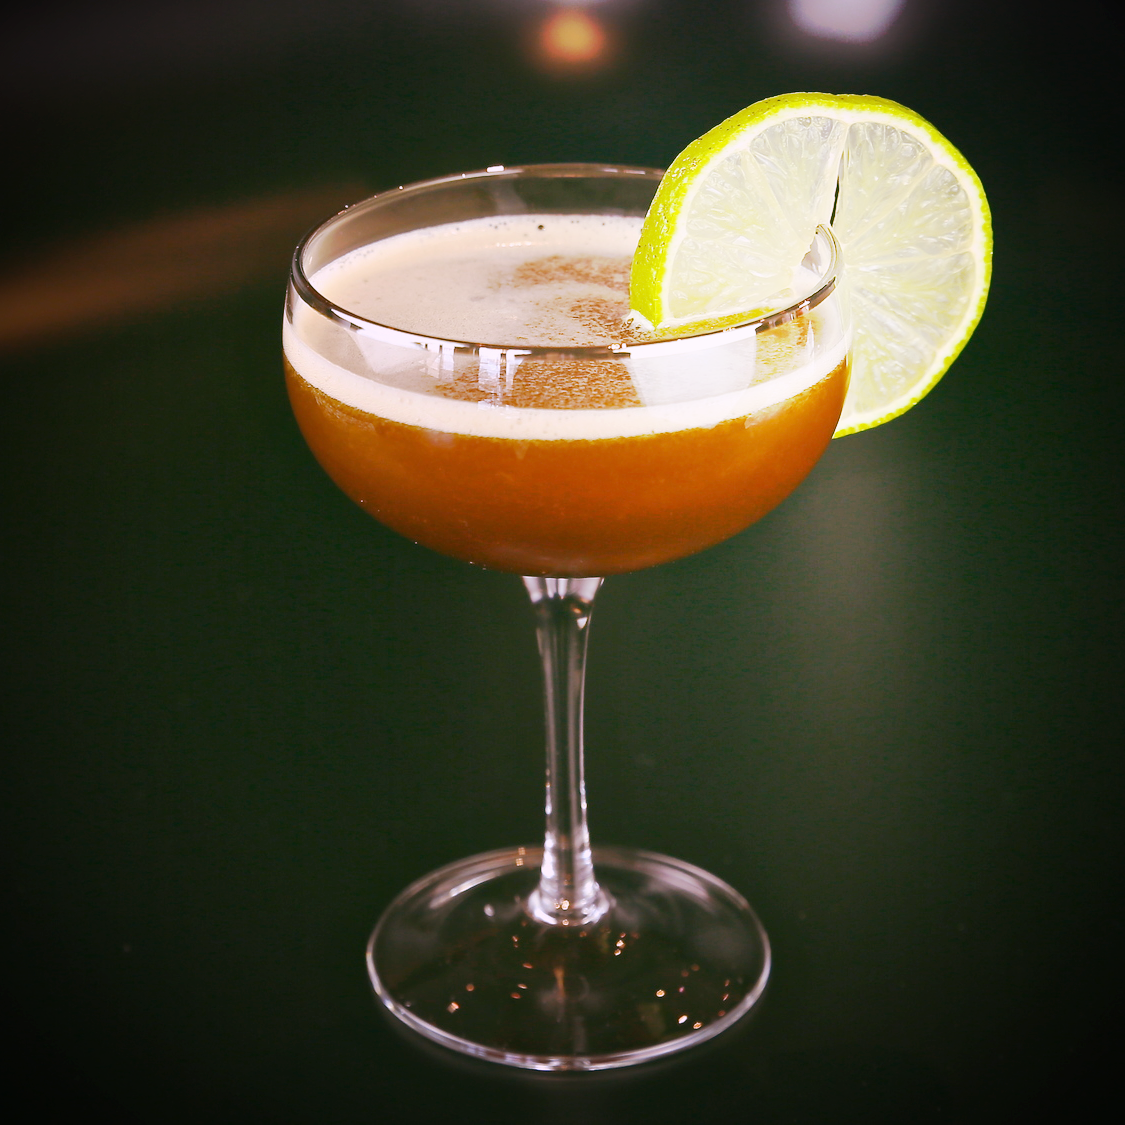 Daiquiri    2 oz R um (Dark Rum preferred for classic)   1 oz Fresh lime juice   1 oz Simple syrup (sugar dissolved in water)   Add all the ingredients to a shaker and fill with ice. Shake, and strain into a chilled Martini glass. Garnish with a lime wheel.